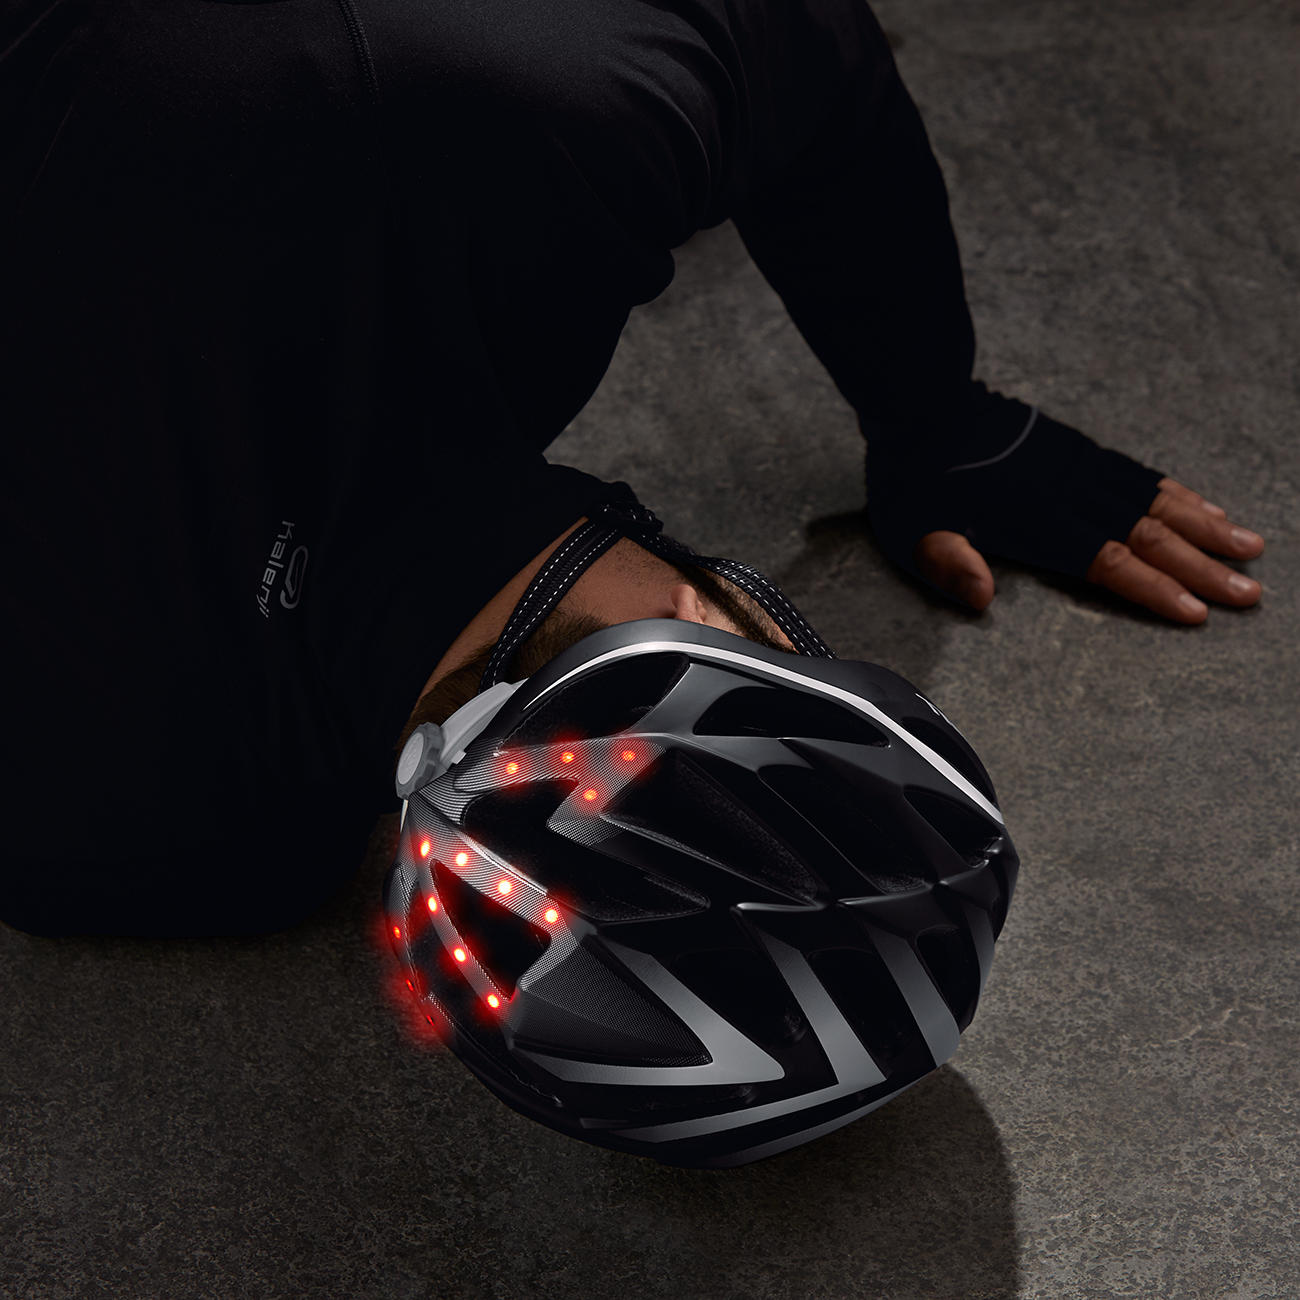 New Helmet Sends Distress Message in Case of Accident